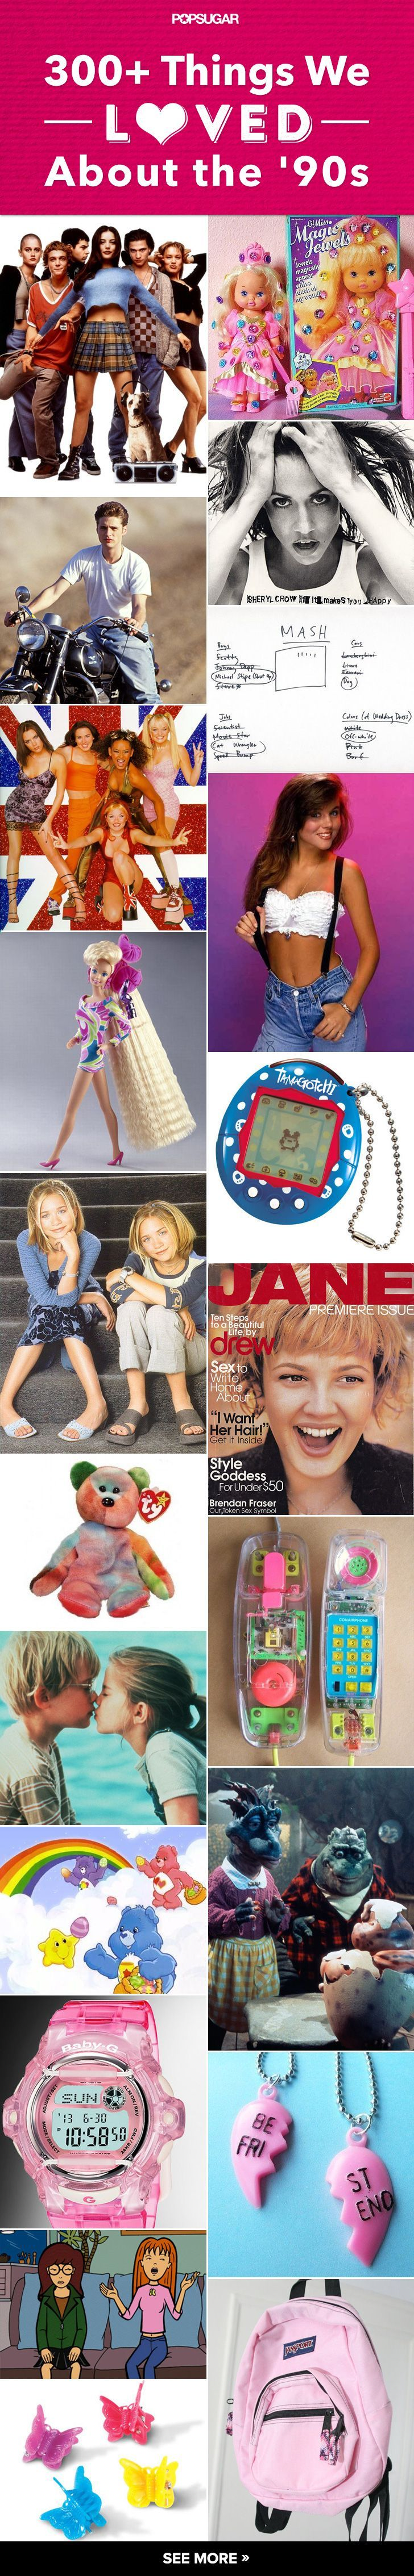 371 Reasons Why Being a '90s Girl Rocked Our Jellies Off. Except for the doll. Never liked dolls, stuffed animals only.